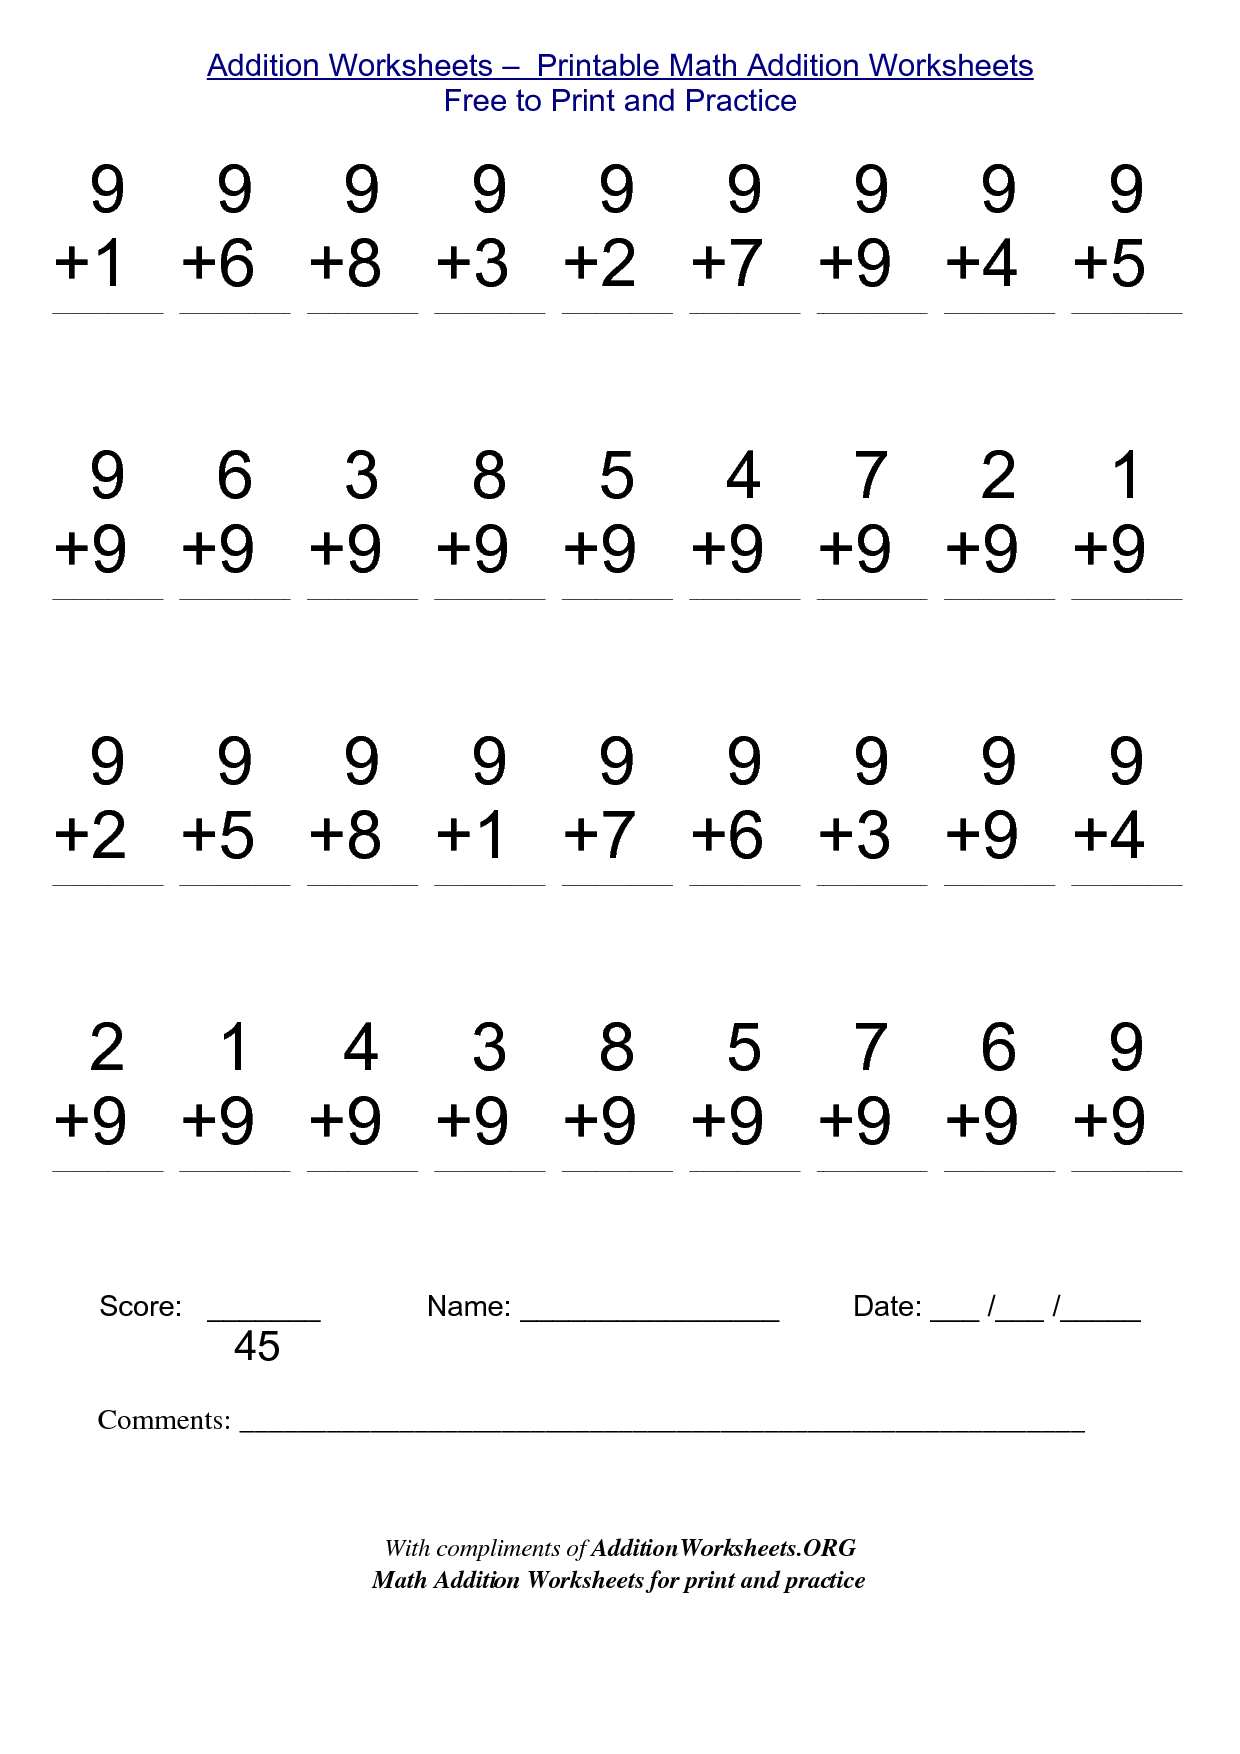 Worksheet Free Printable Math Worksheets For 1st Graders 1st grade math worksheets printable addition intrepidpath 4 best images of printable